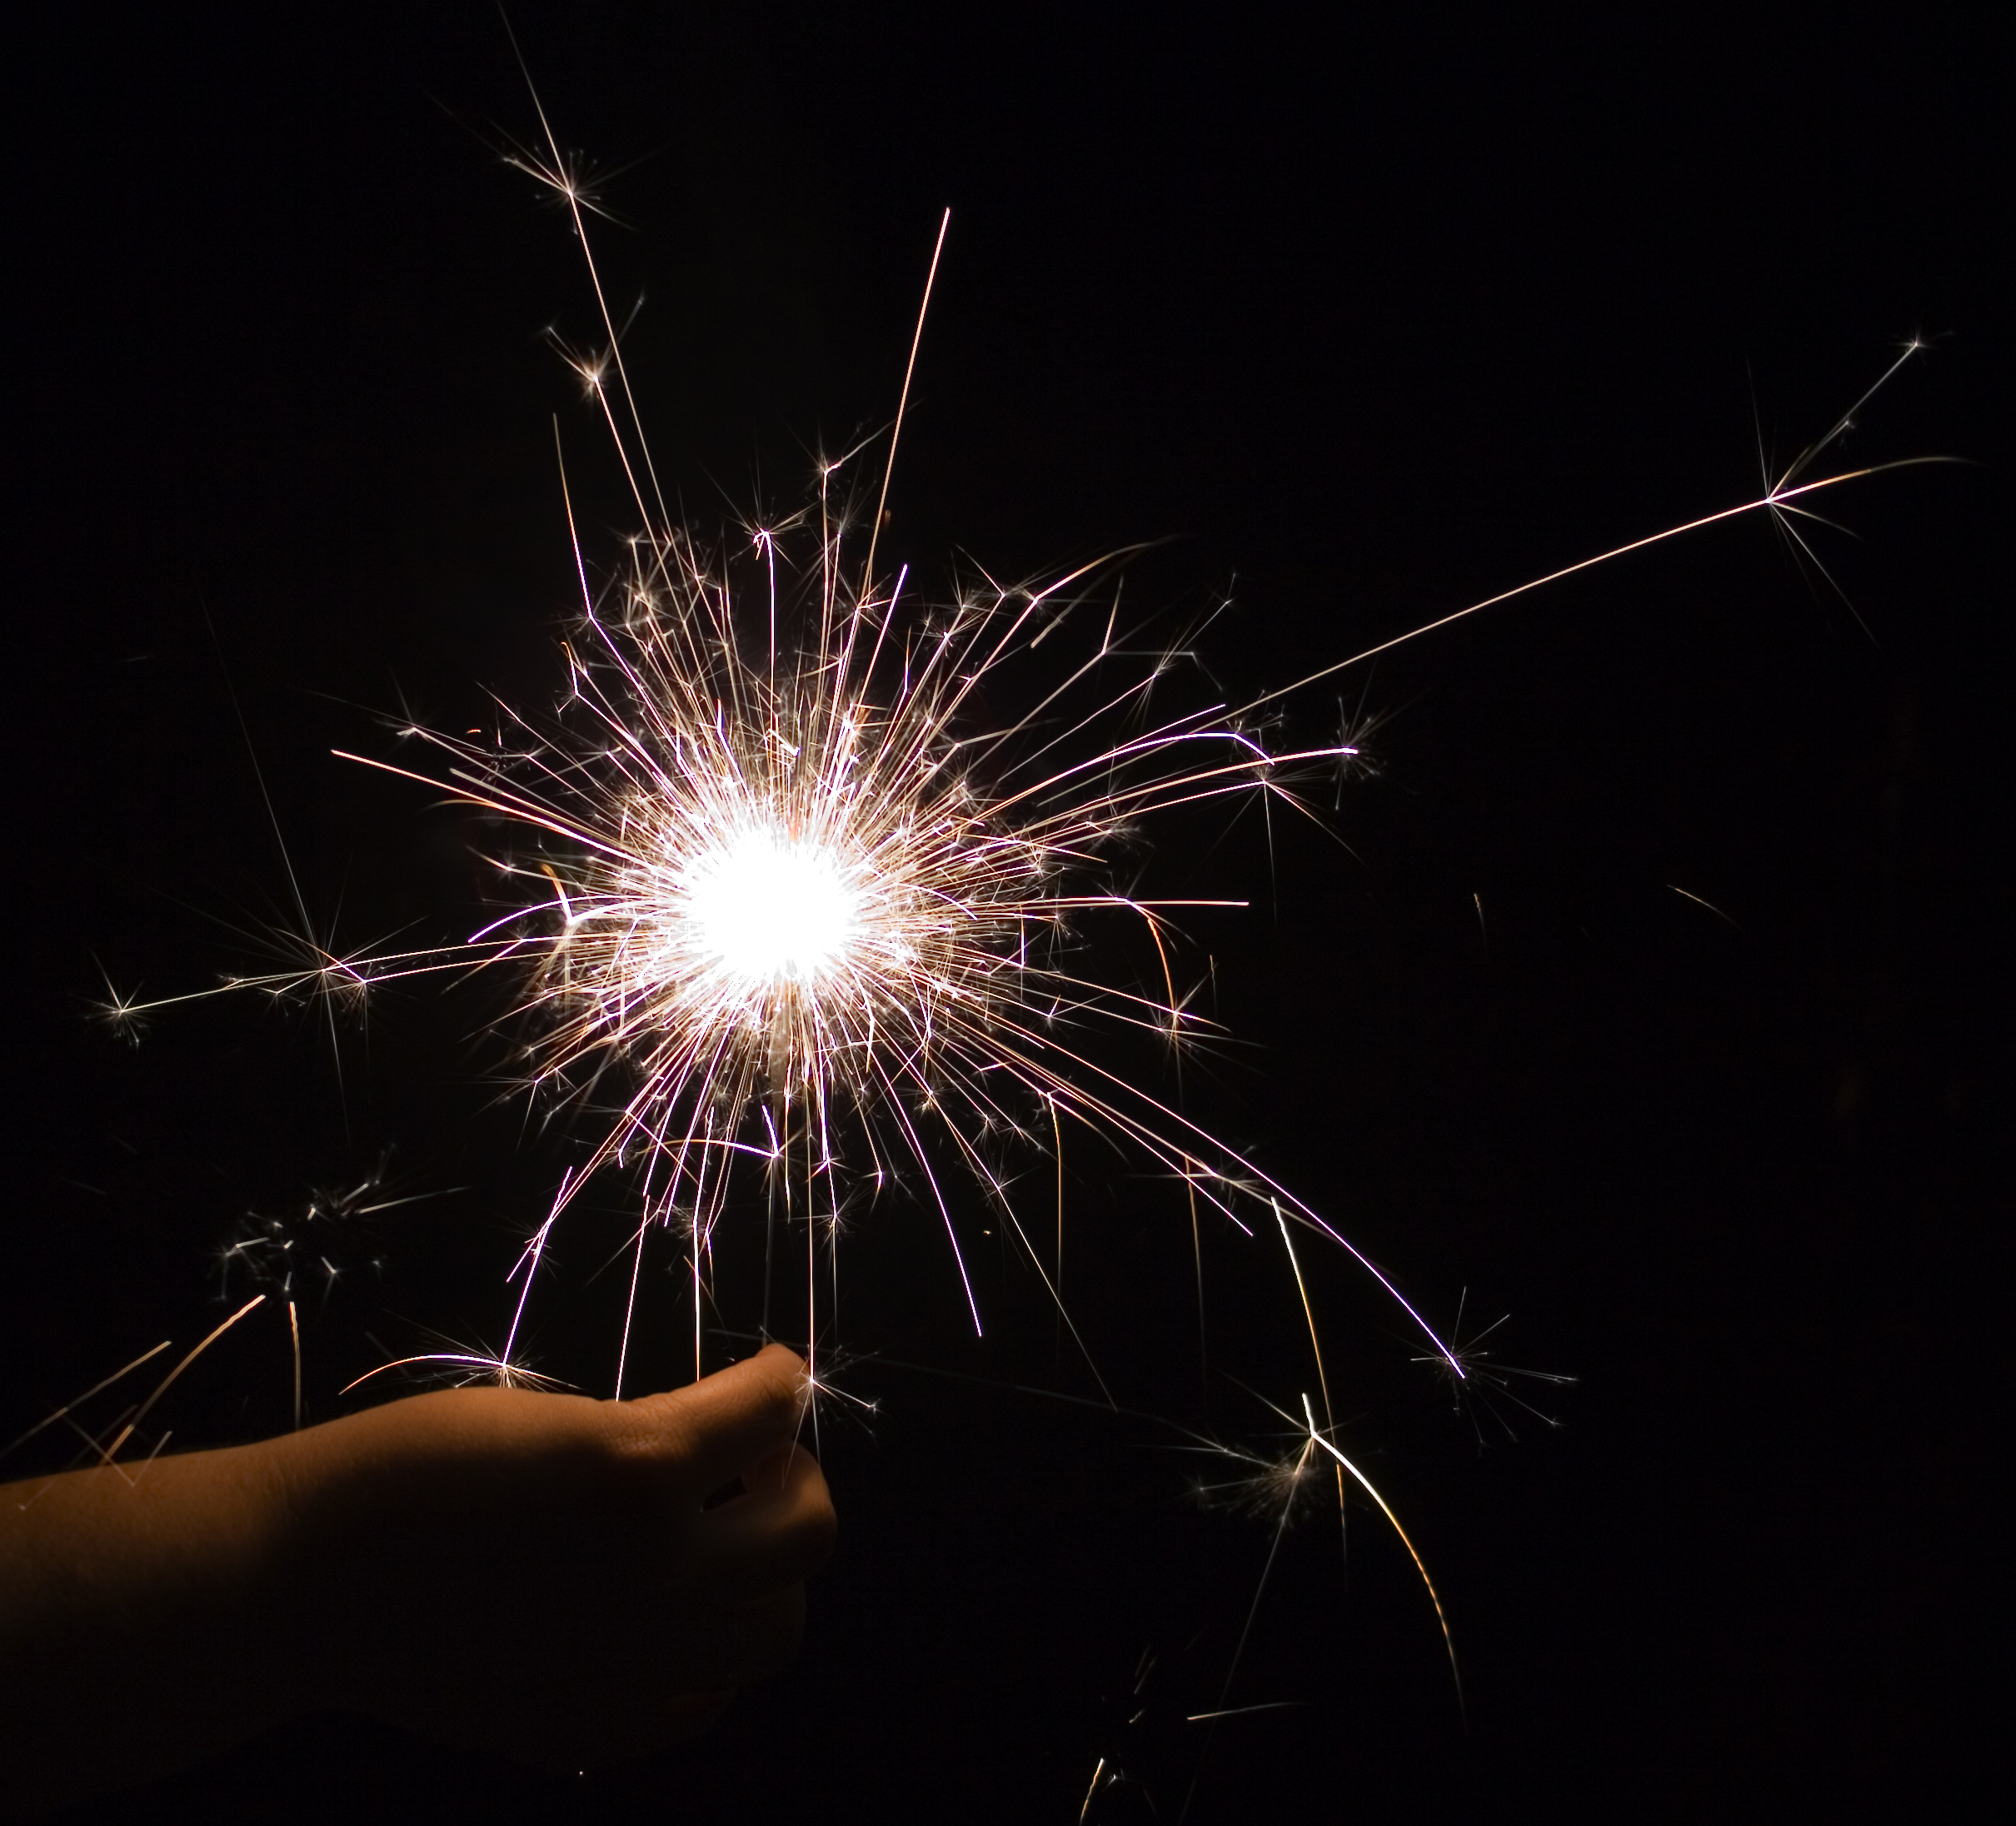 How To Make A Homemade Sparkler 2 Simple Recipes on Aluminum Can Clip Art